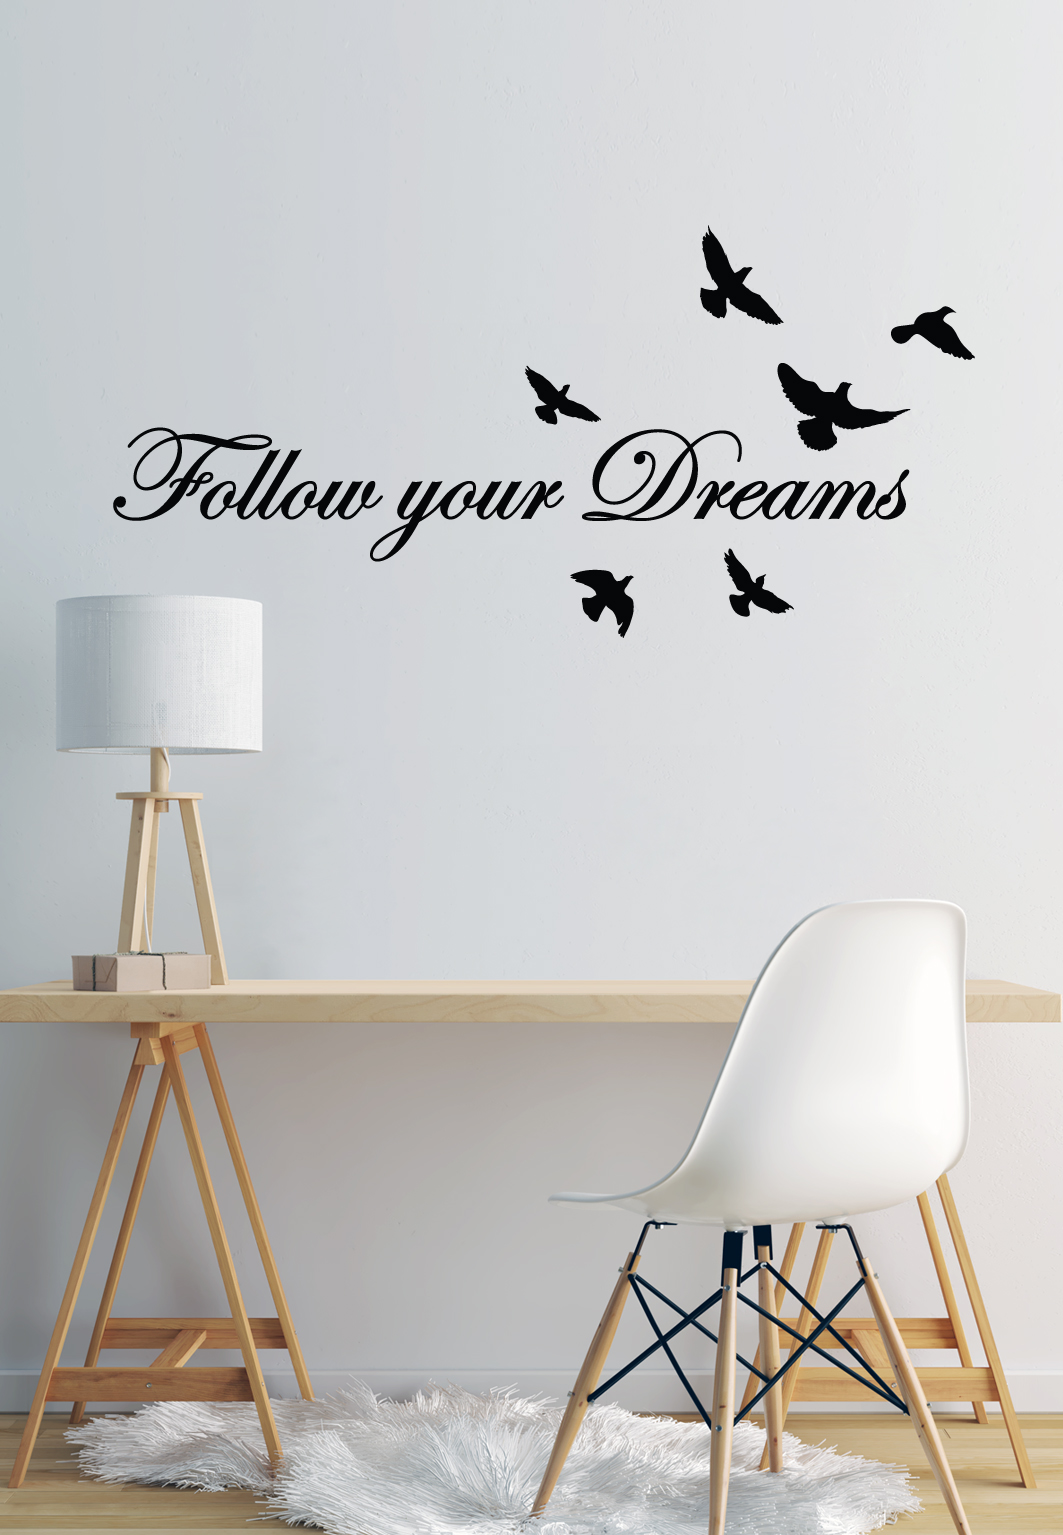 מדבקת קיר - Follow your Dreams 4